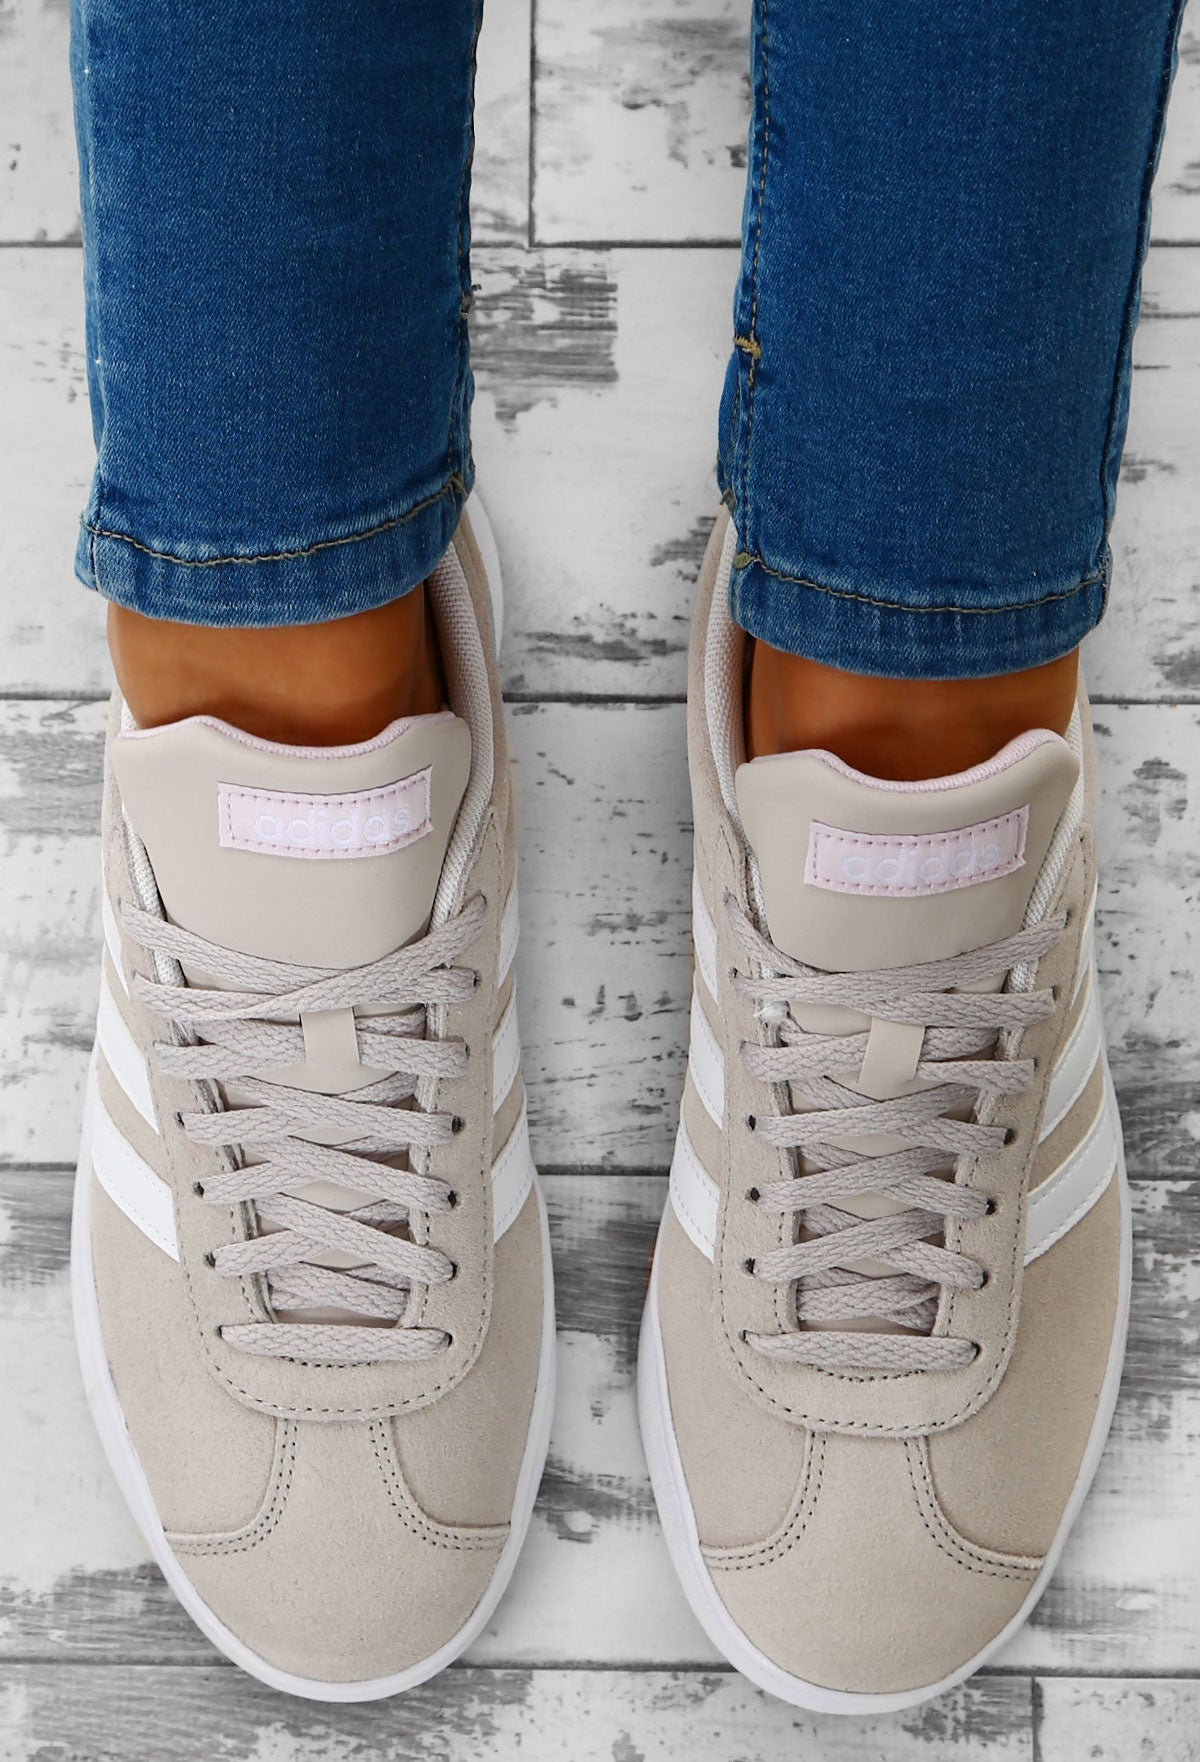 new arrivals ca677 73acc Adidas Nude VL Court 2.0 Suede Trainers